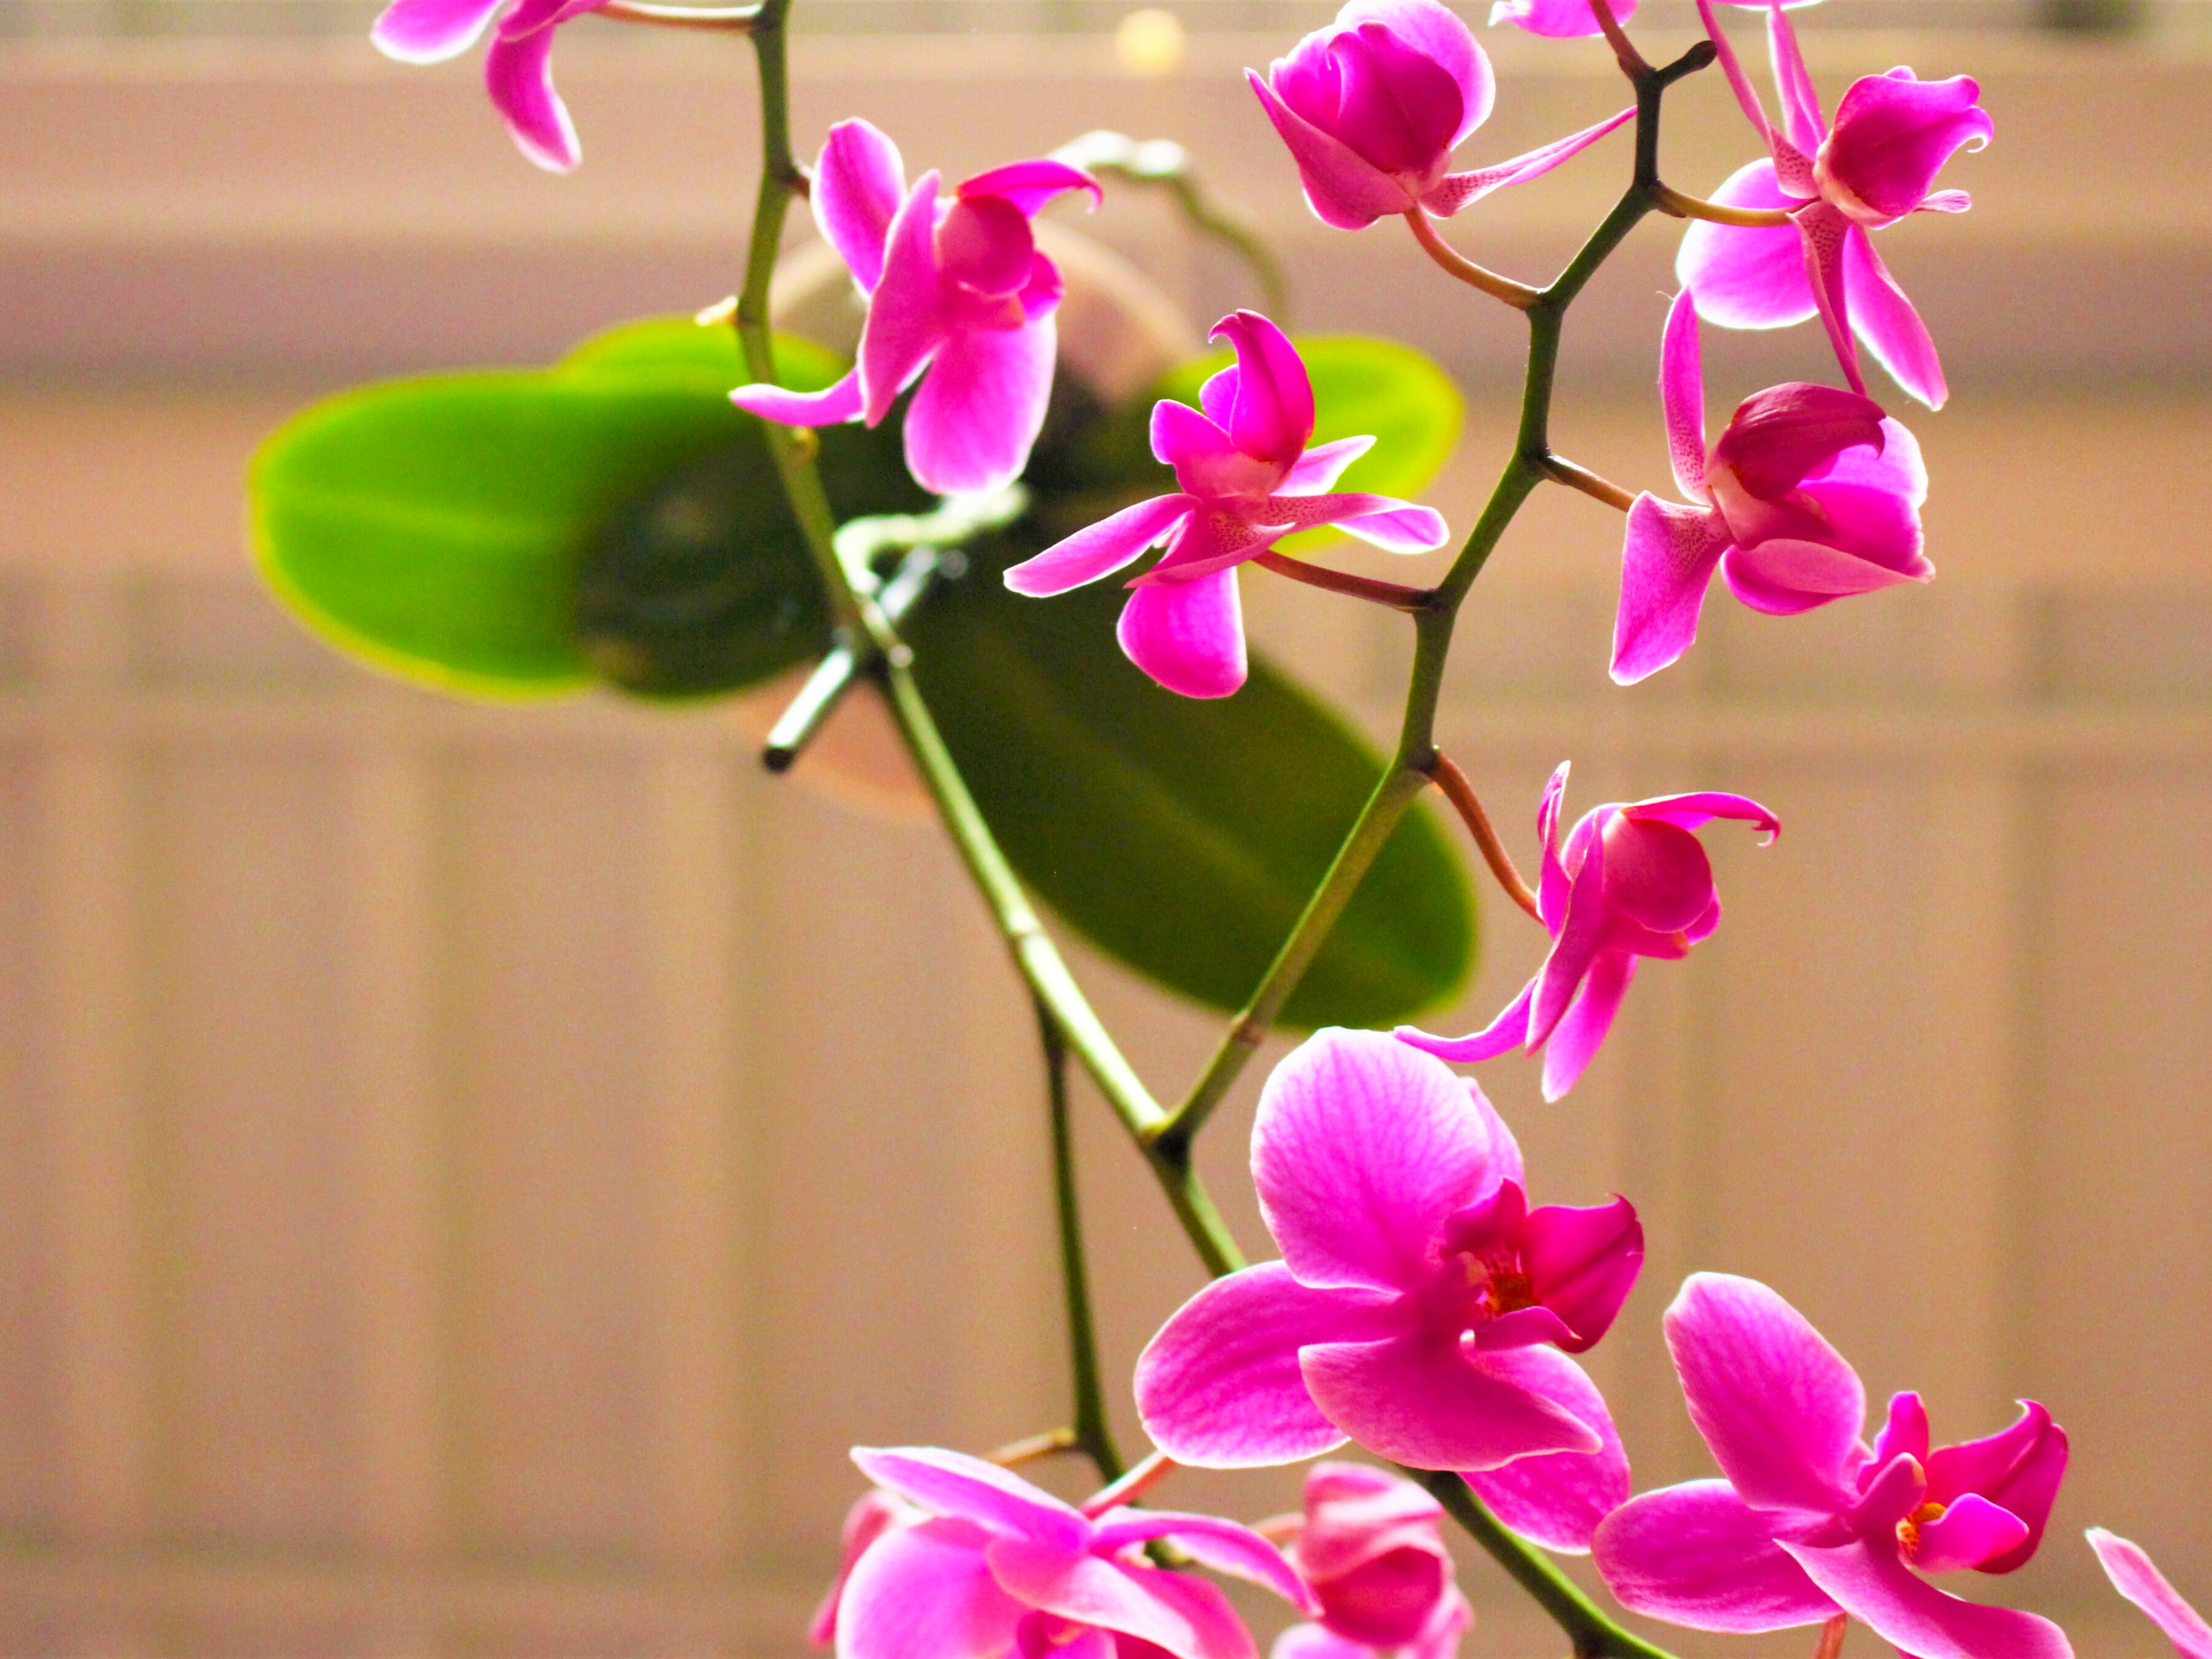 Orchids - yes there are real and are found in our courtyard ... hanging from the ceiling!